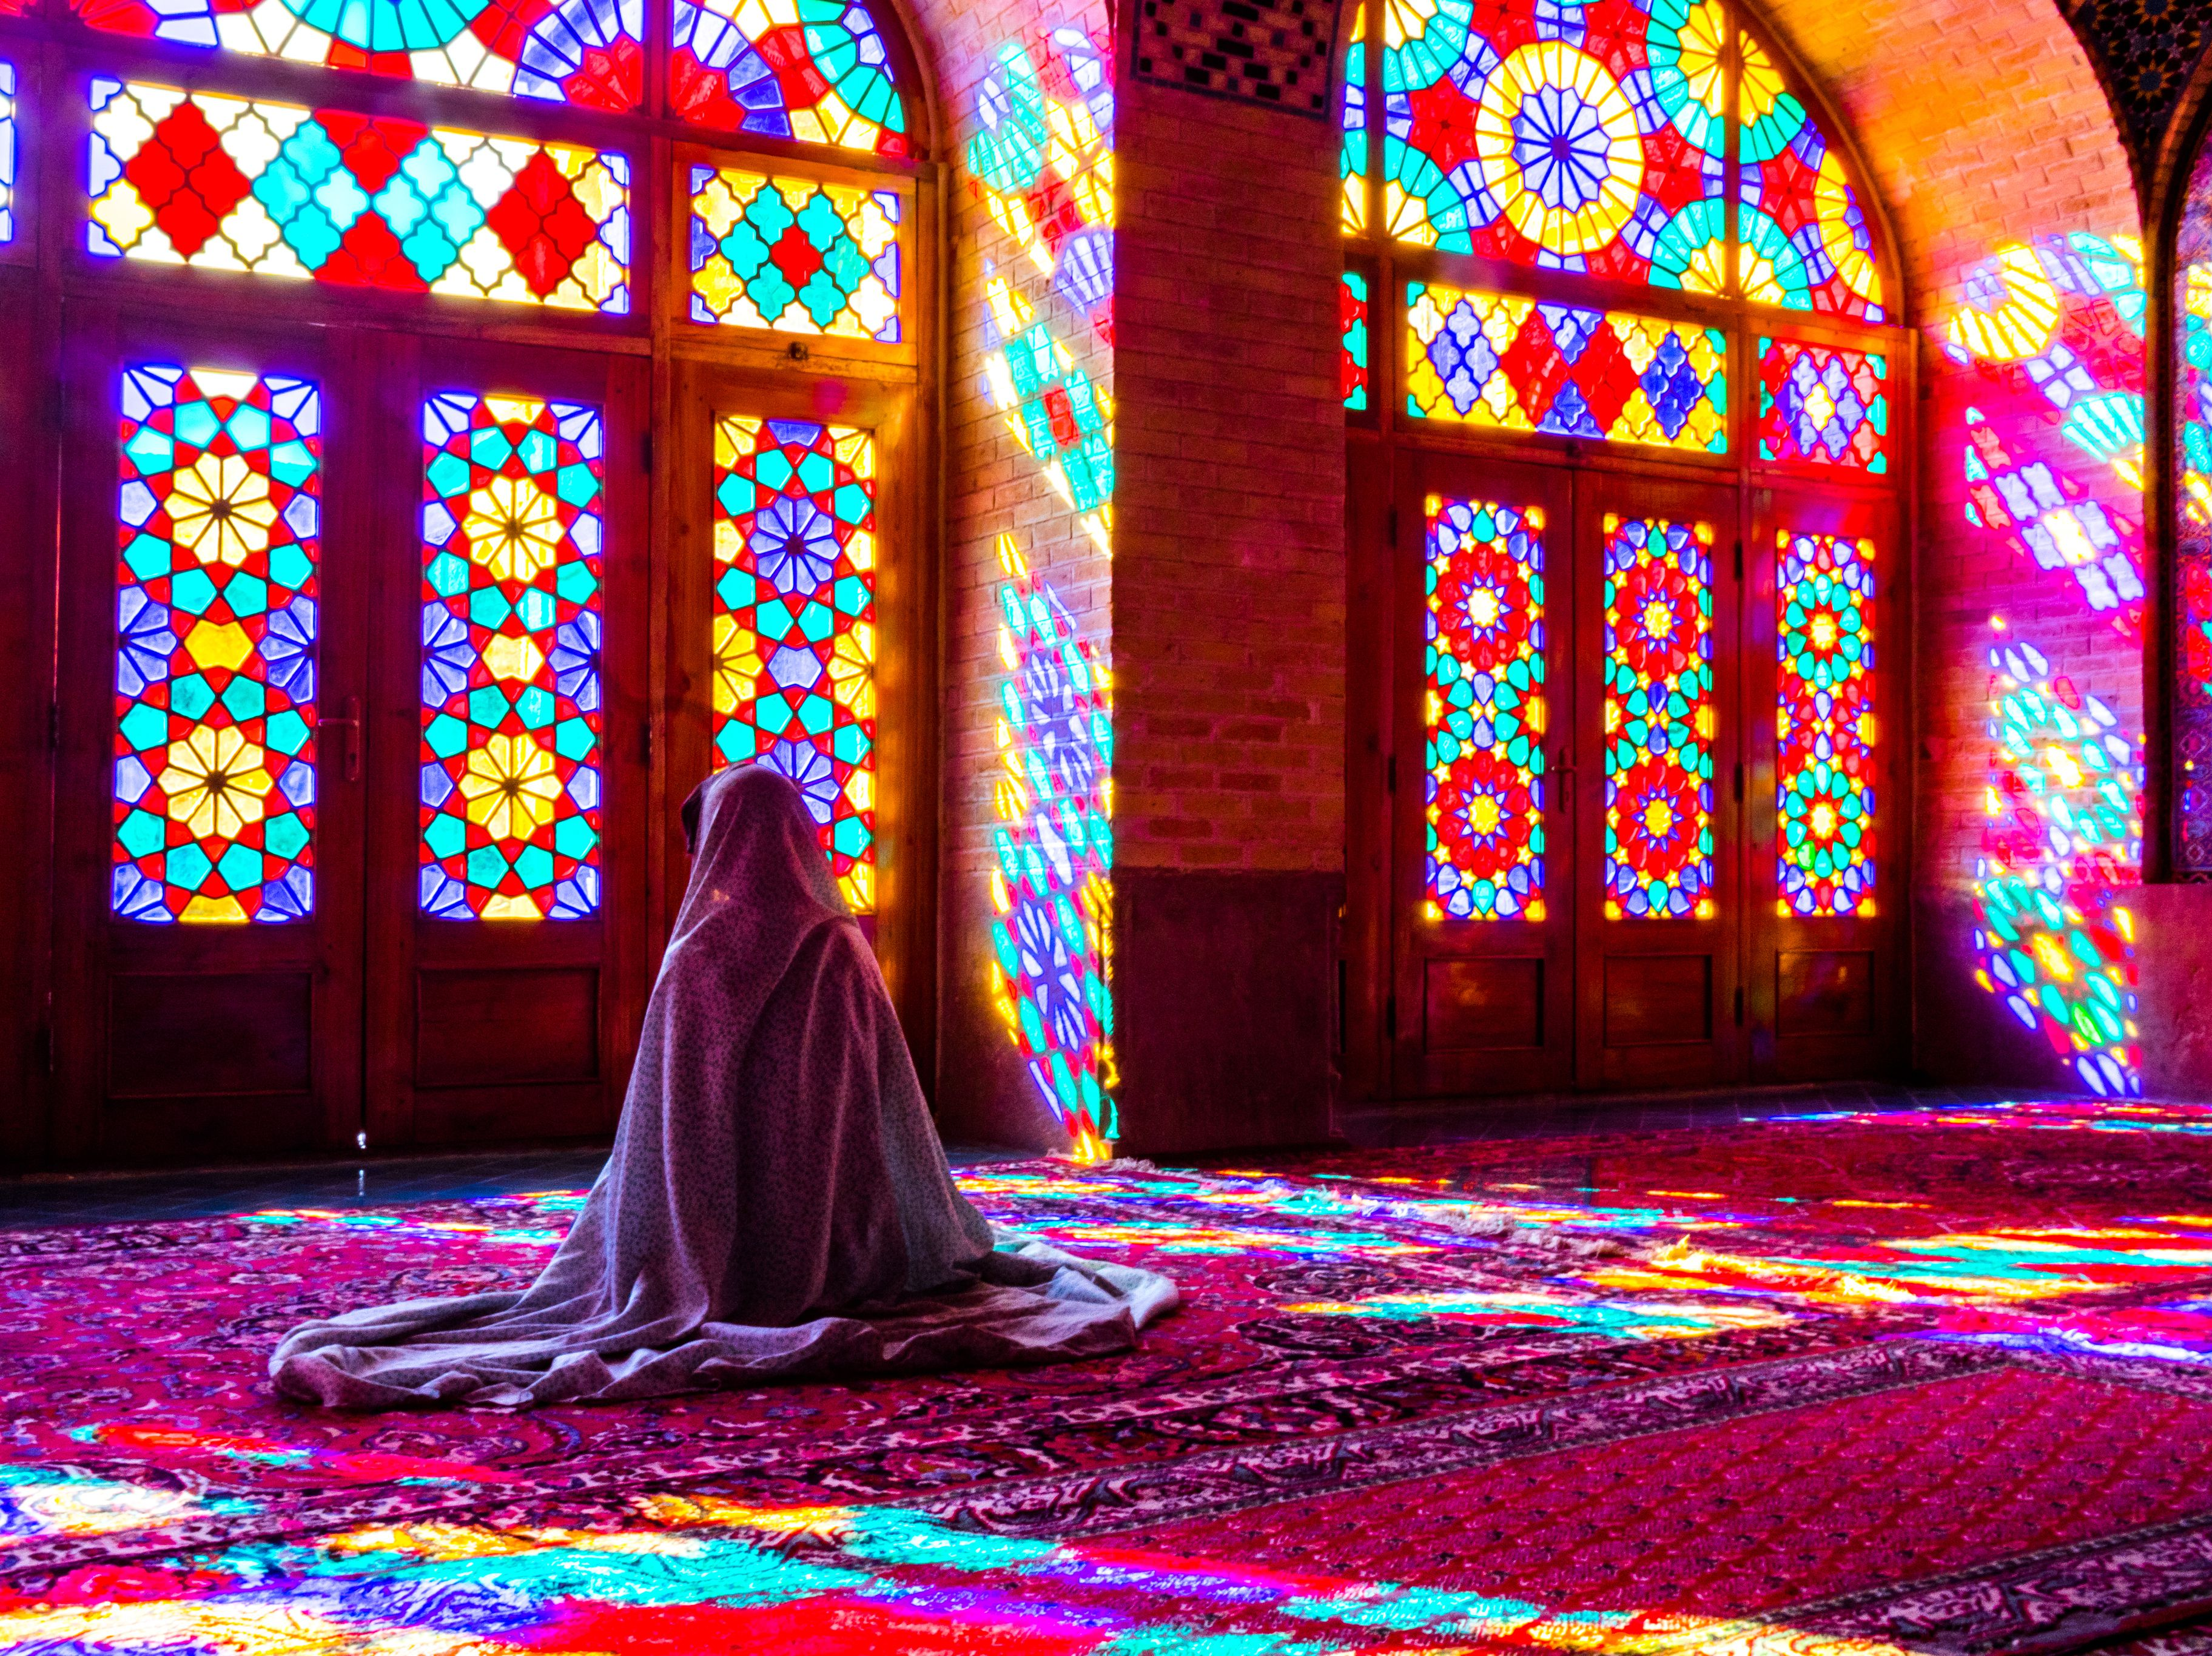 Woman worshipping in front of stained glass windows in Shiraz, Iran